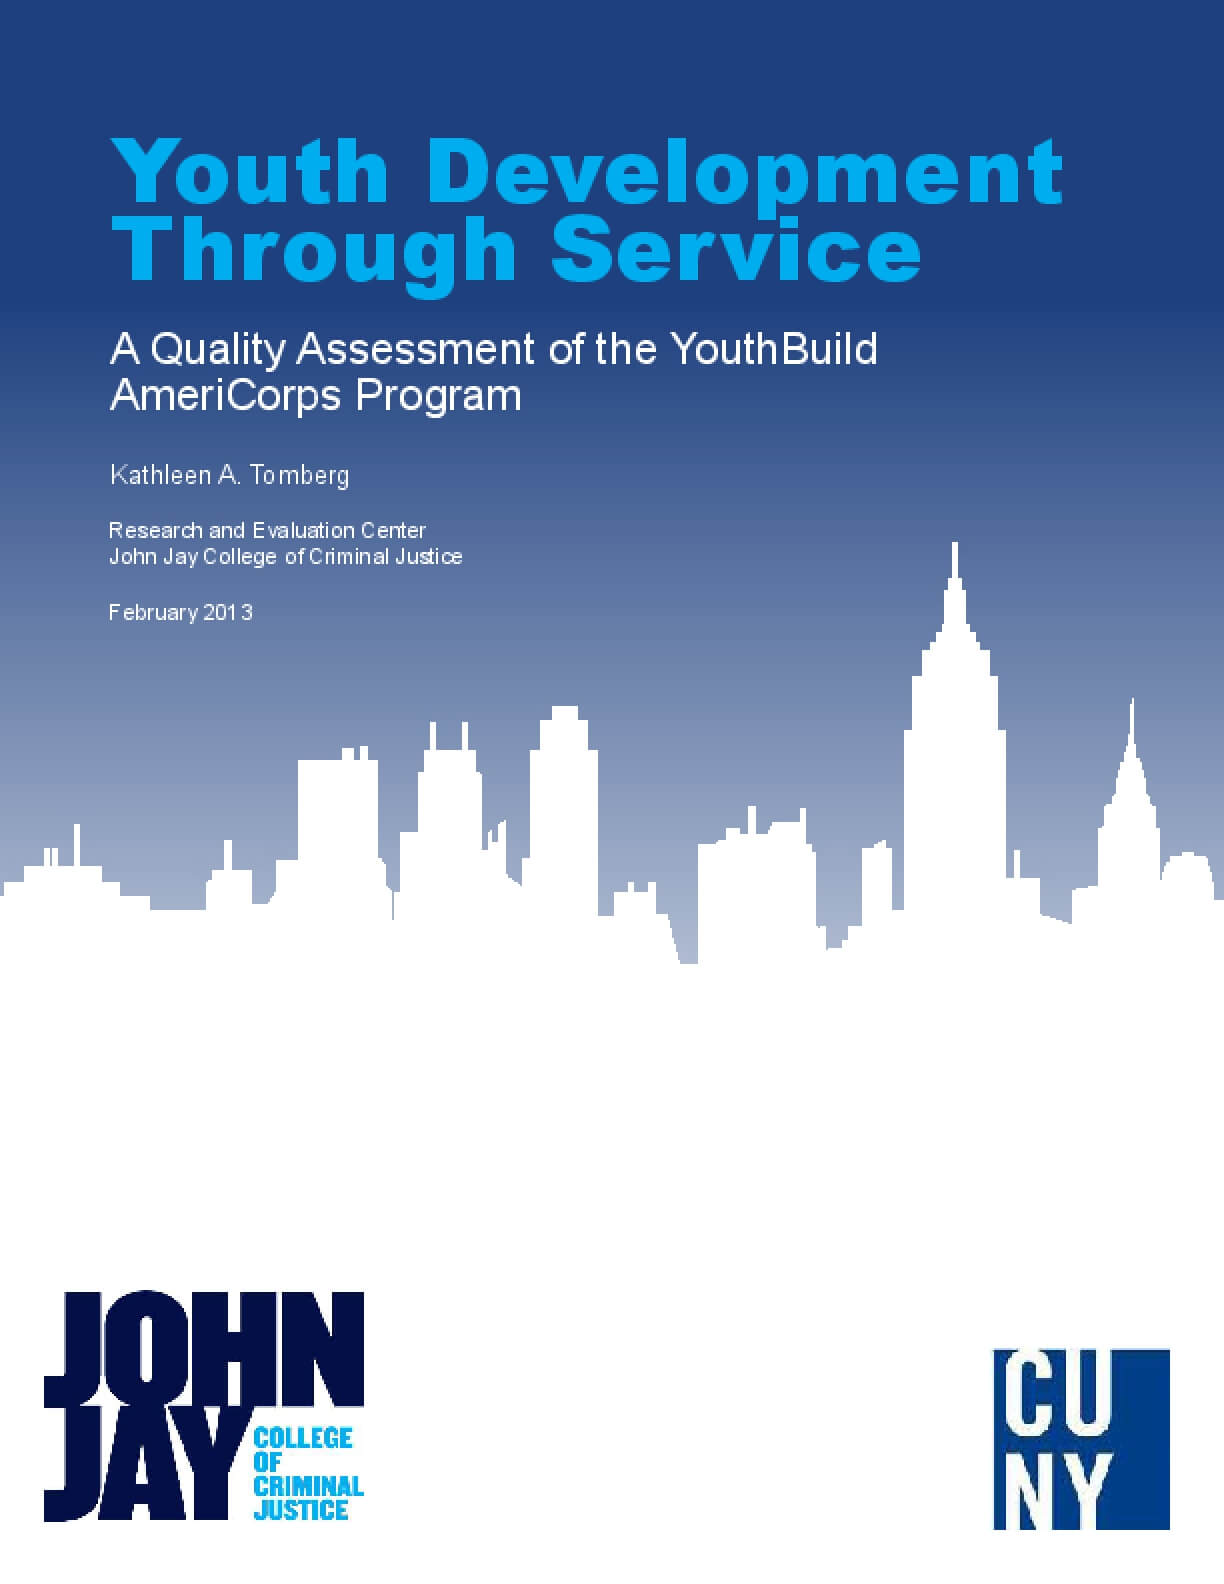 Youth Development Through Service: A Quality Assessment of the YouthBuild AmeriCorps Program